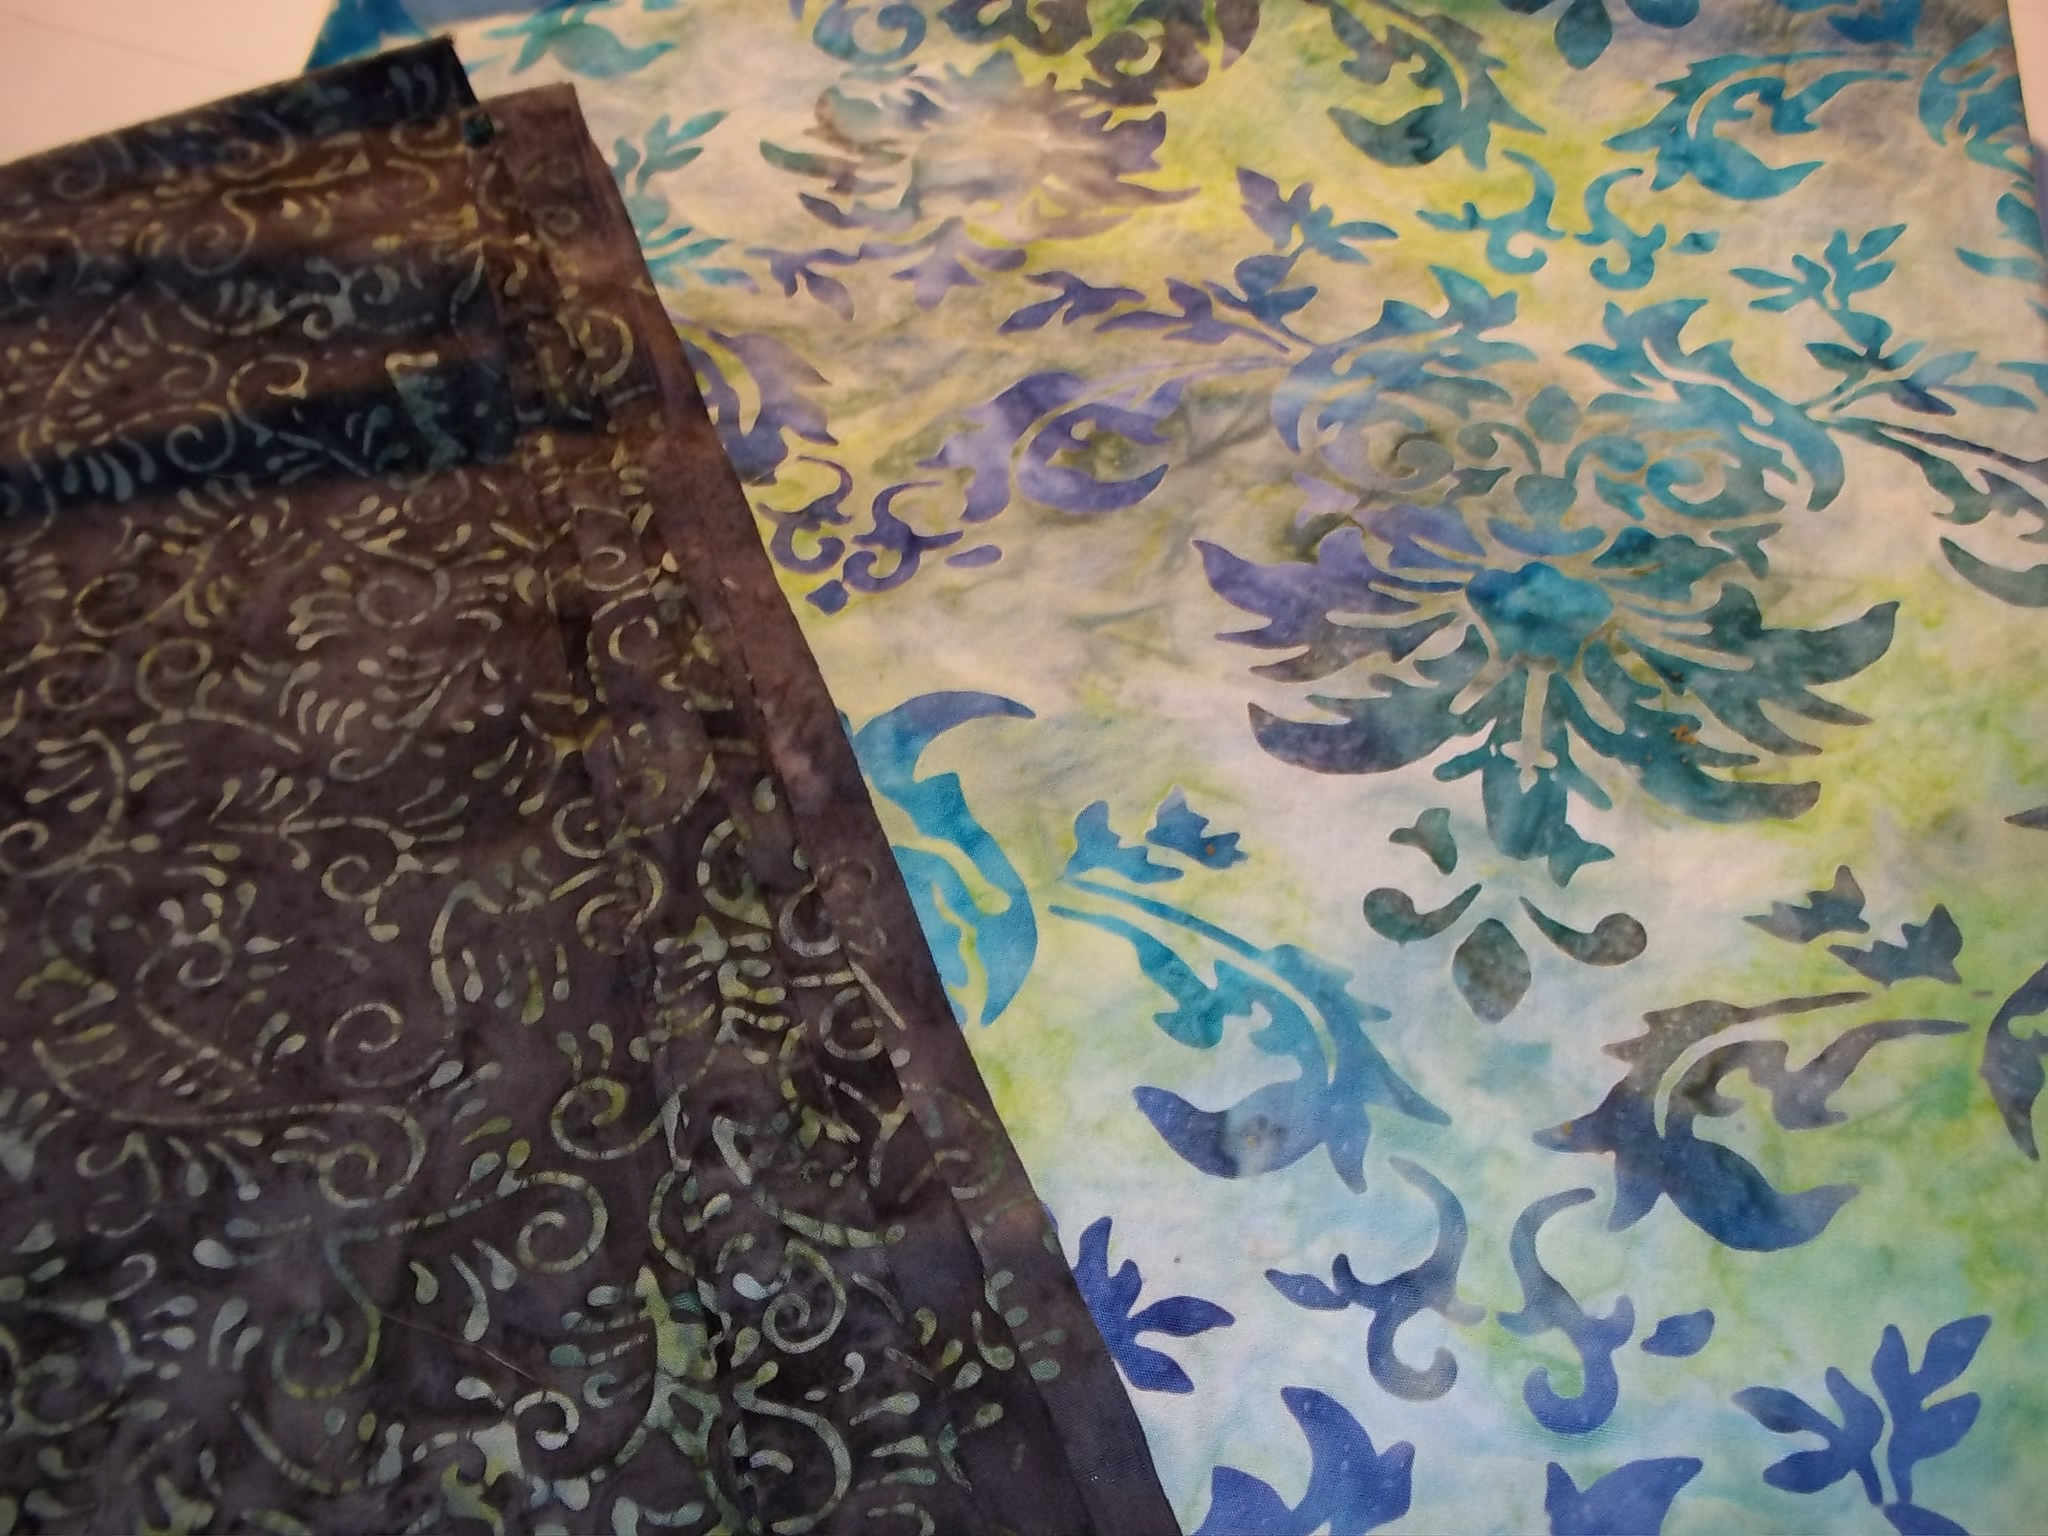 Grey with green swirls for top fabric. Blue and green multi-color patterned background.